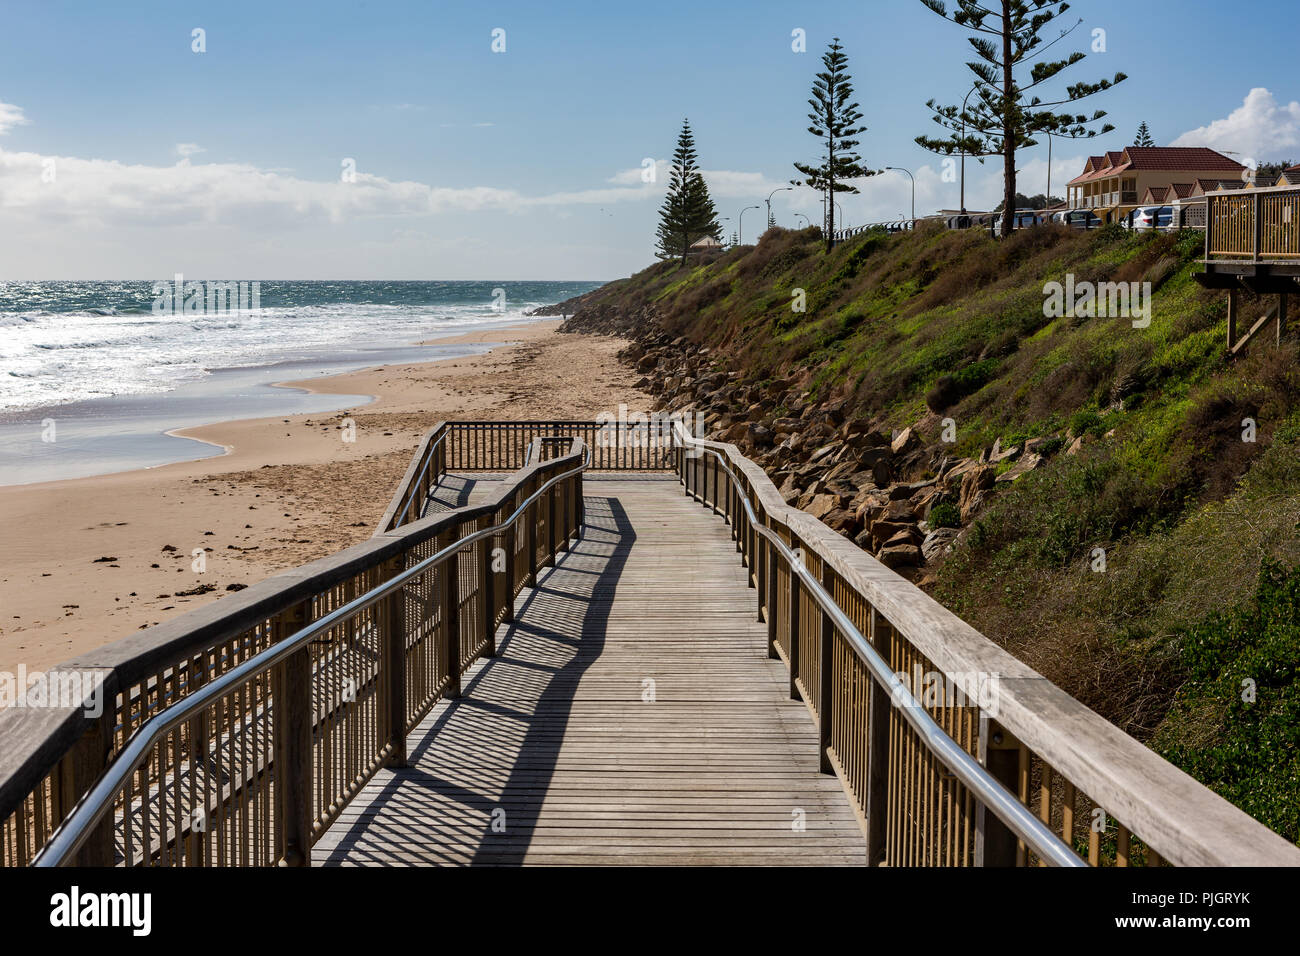 The beach access ramp on to the sand at Christies Beach South Australia on 6th September 2018 - Stock Image